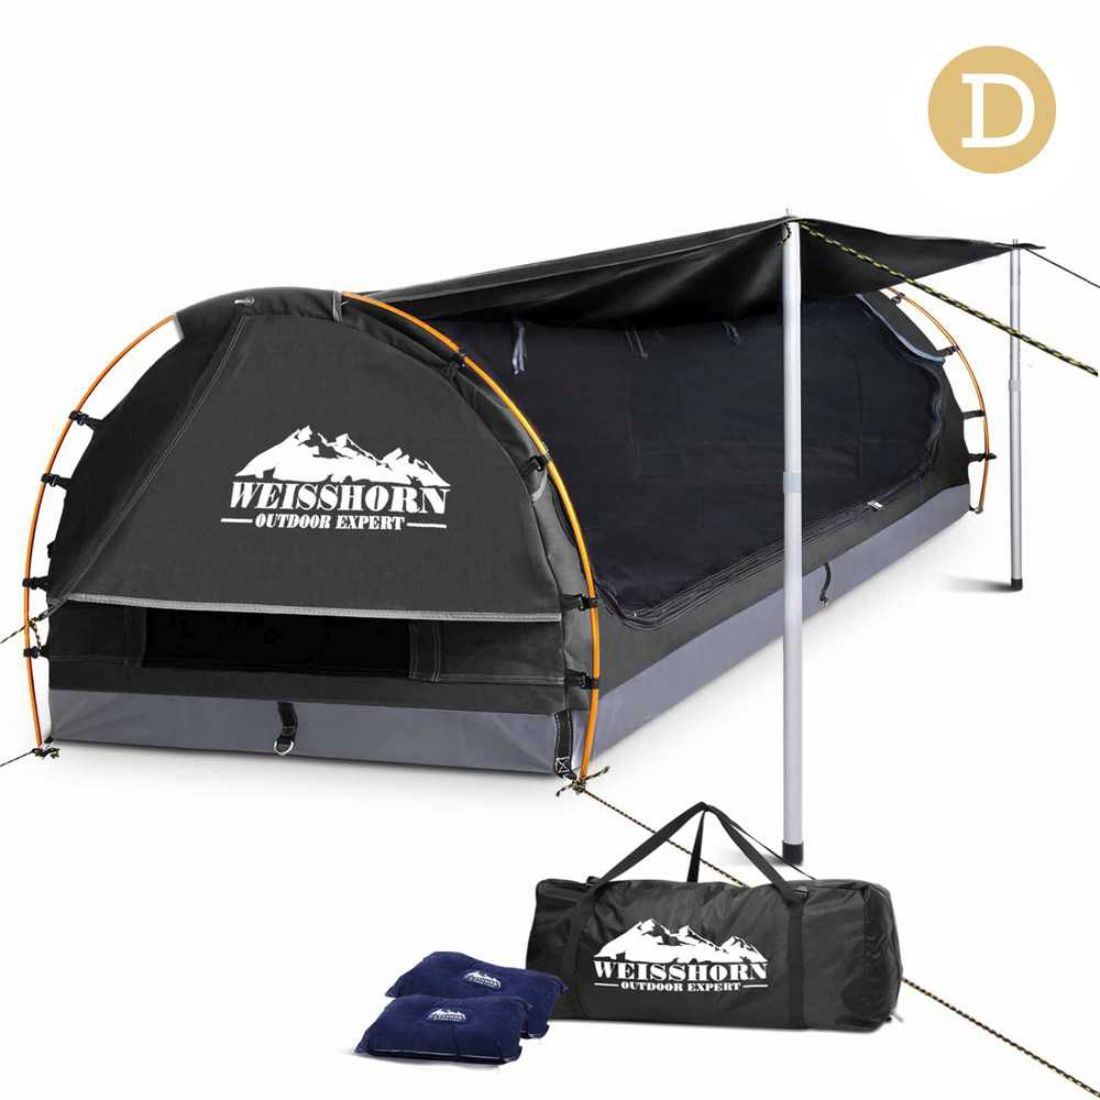 Double Camping Canvas Swag Grey with Mattress and Air Pillow